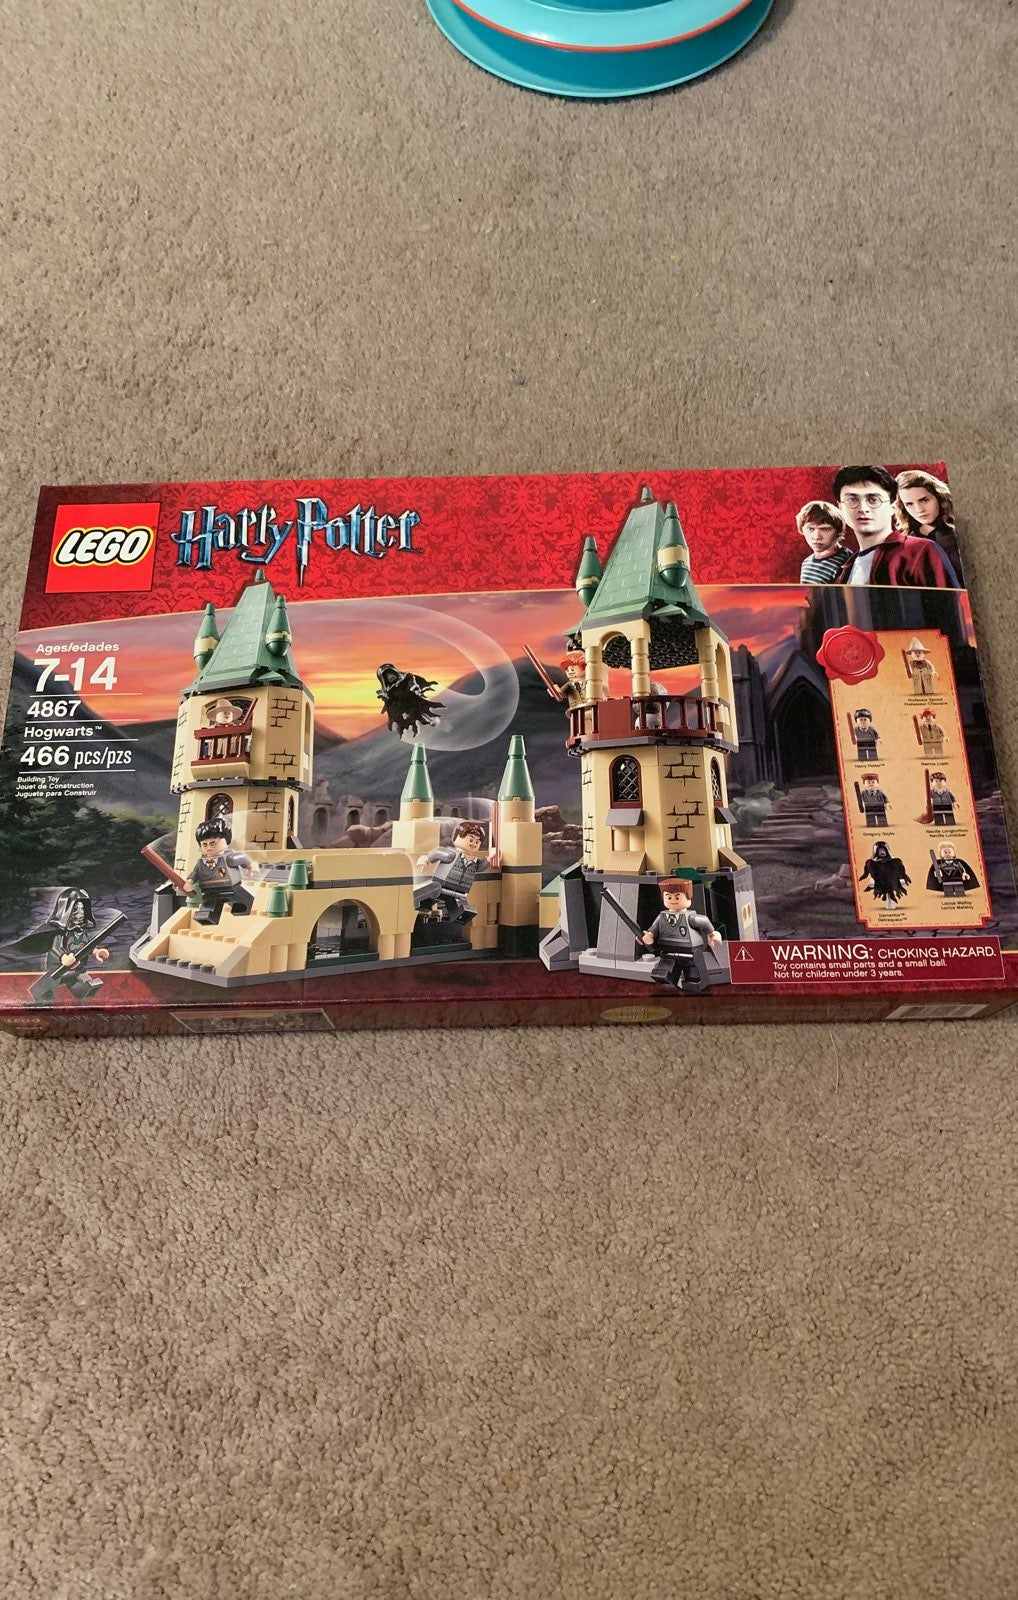 LEGO Harry Potter Hogwarts and Quidditch